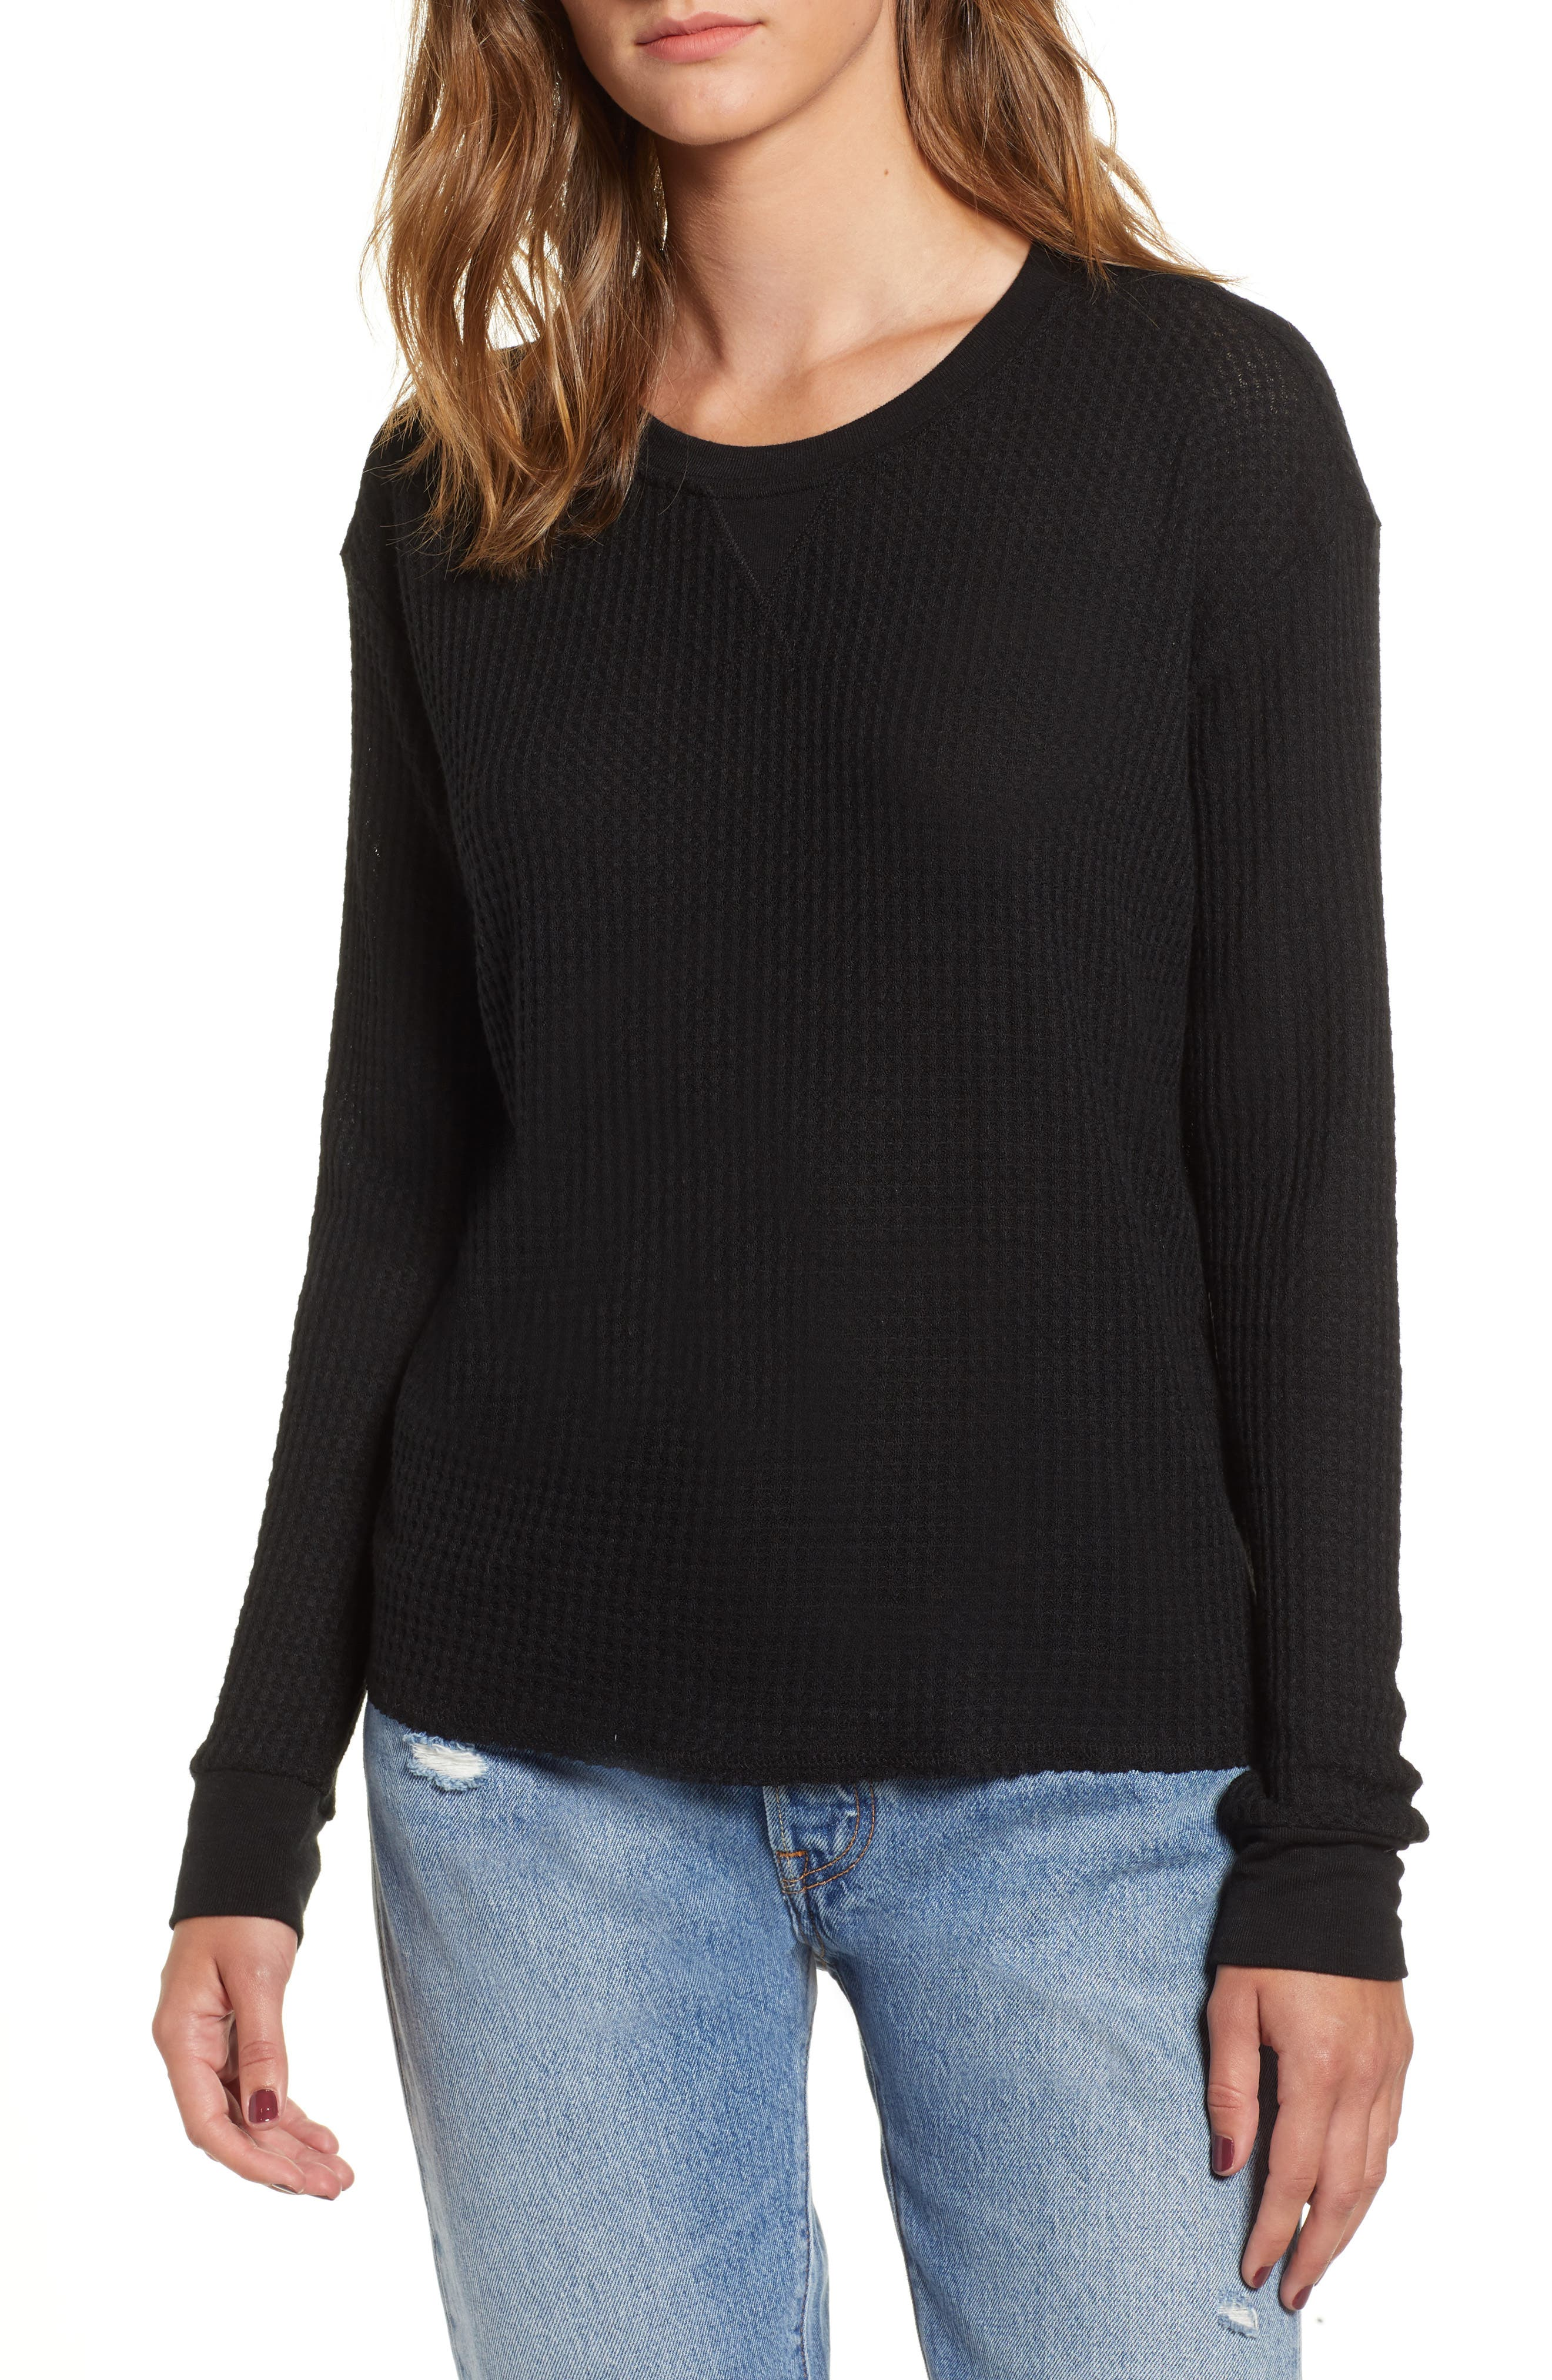 Cited Waffle Knit Pullover Top,                             Main thumbnail 1, color,                             001